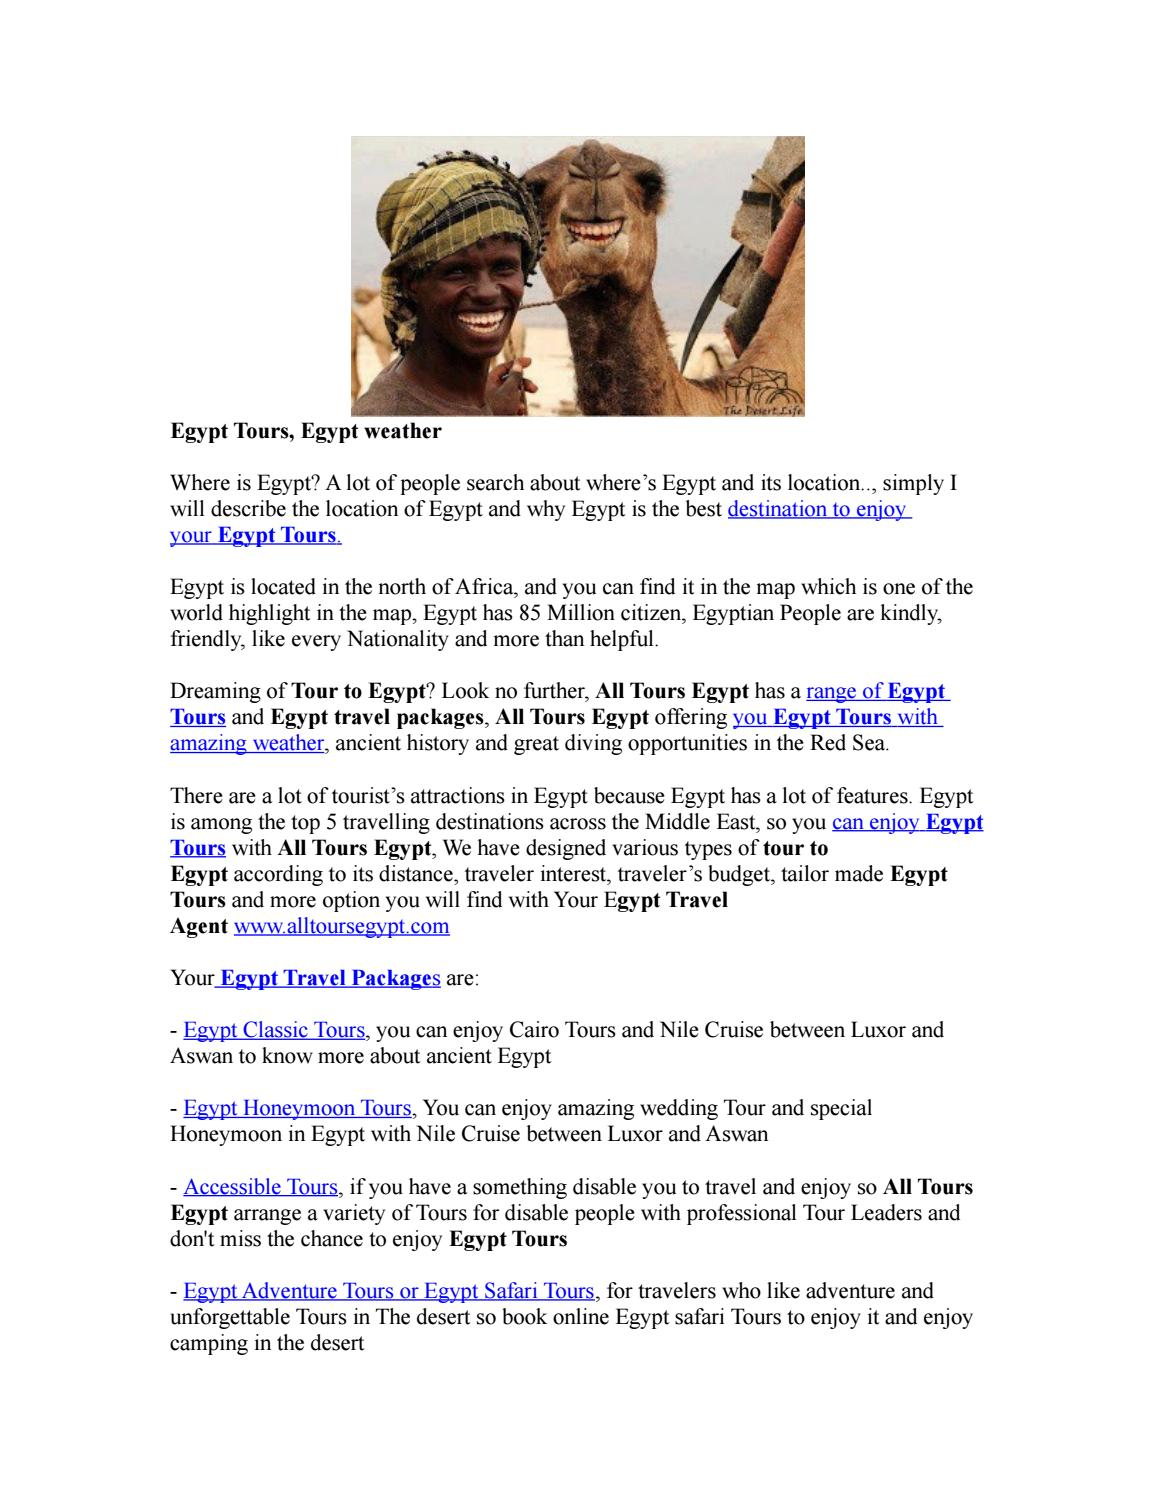 Tailor made tour in egypt 2 by AllTours Egypt - issuu